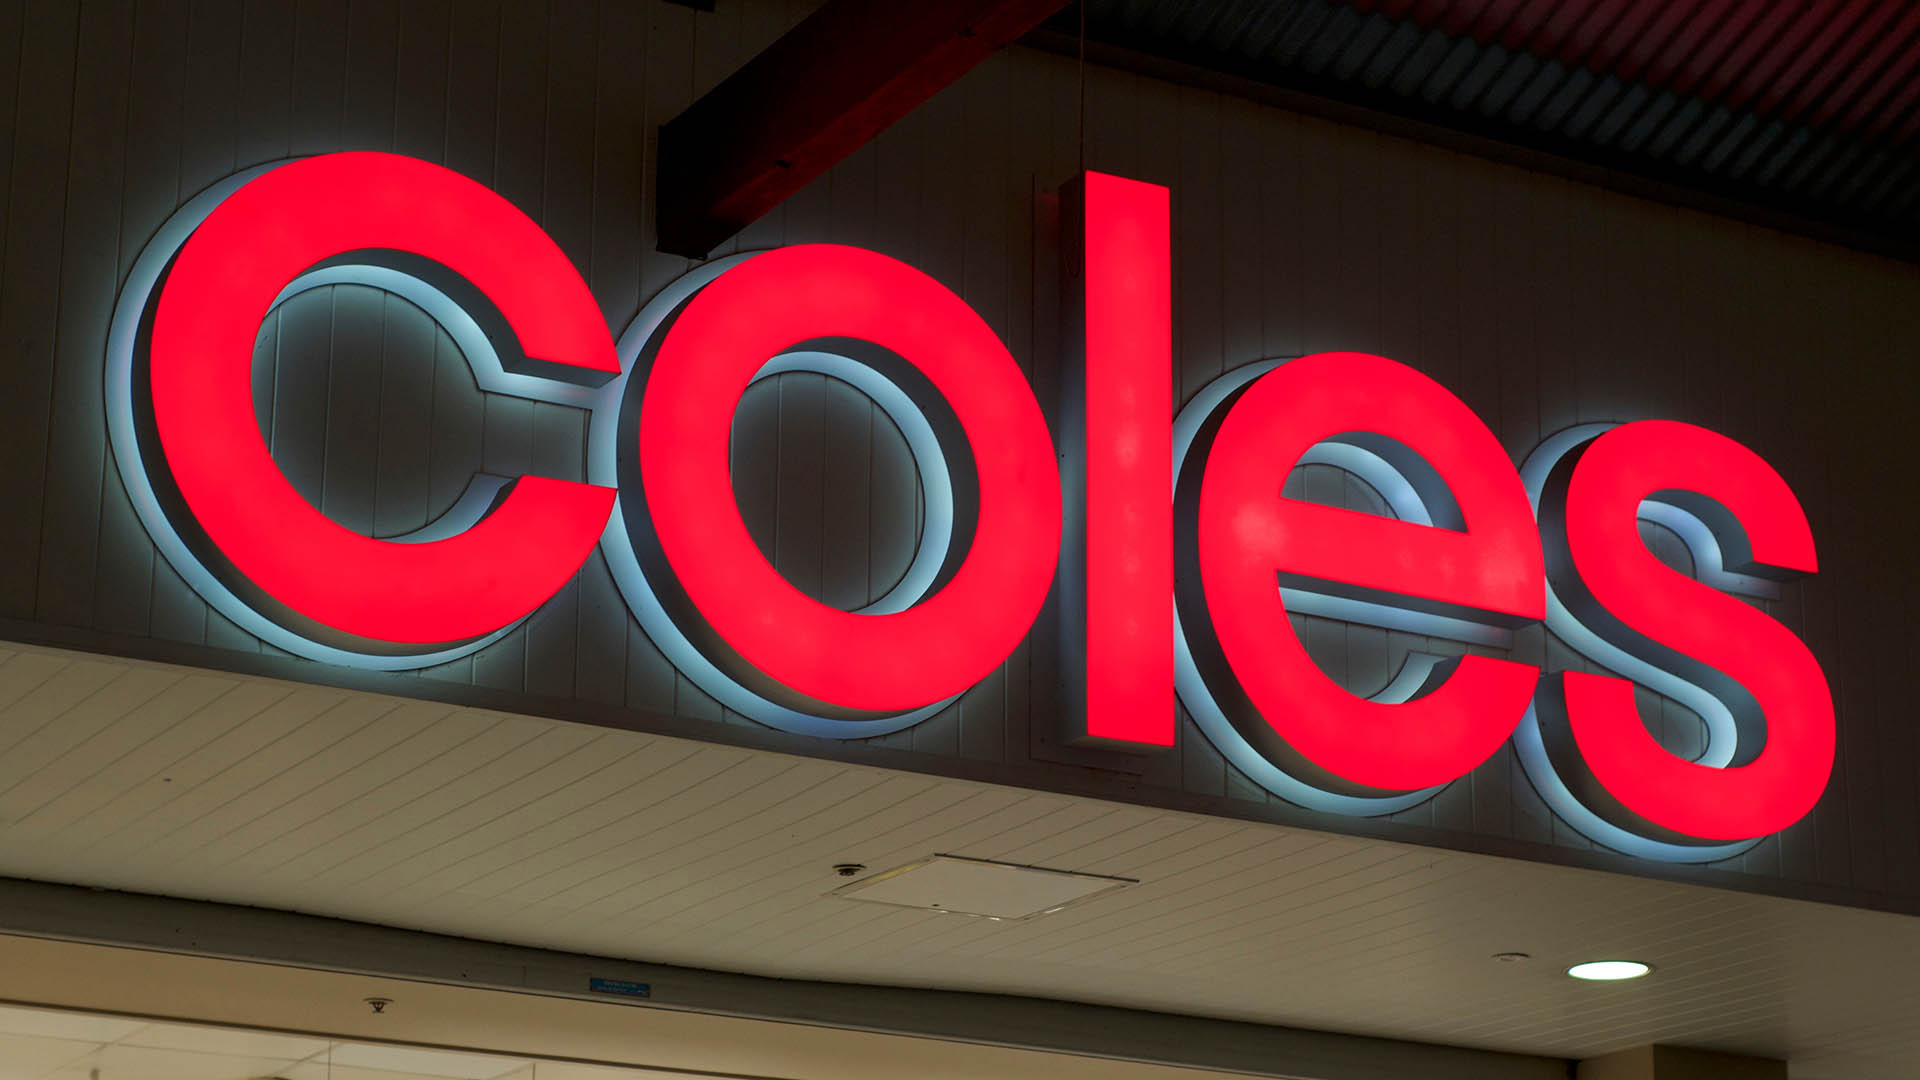 Wesfarmers (ASX:WES) to sell 5.2% of issued capital in Coles